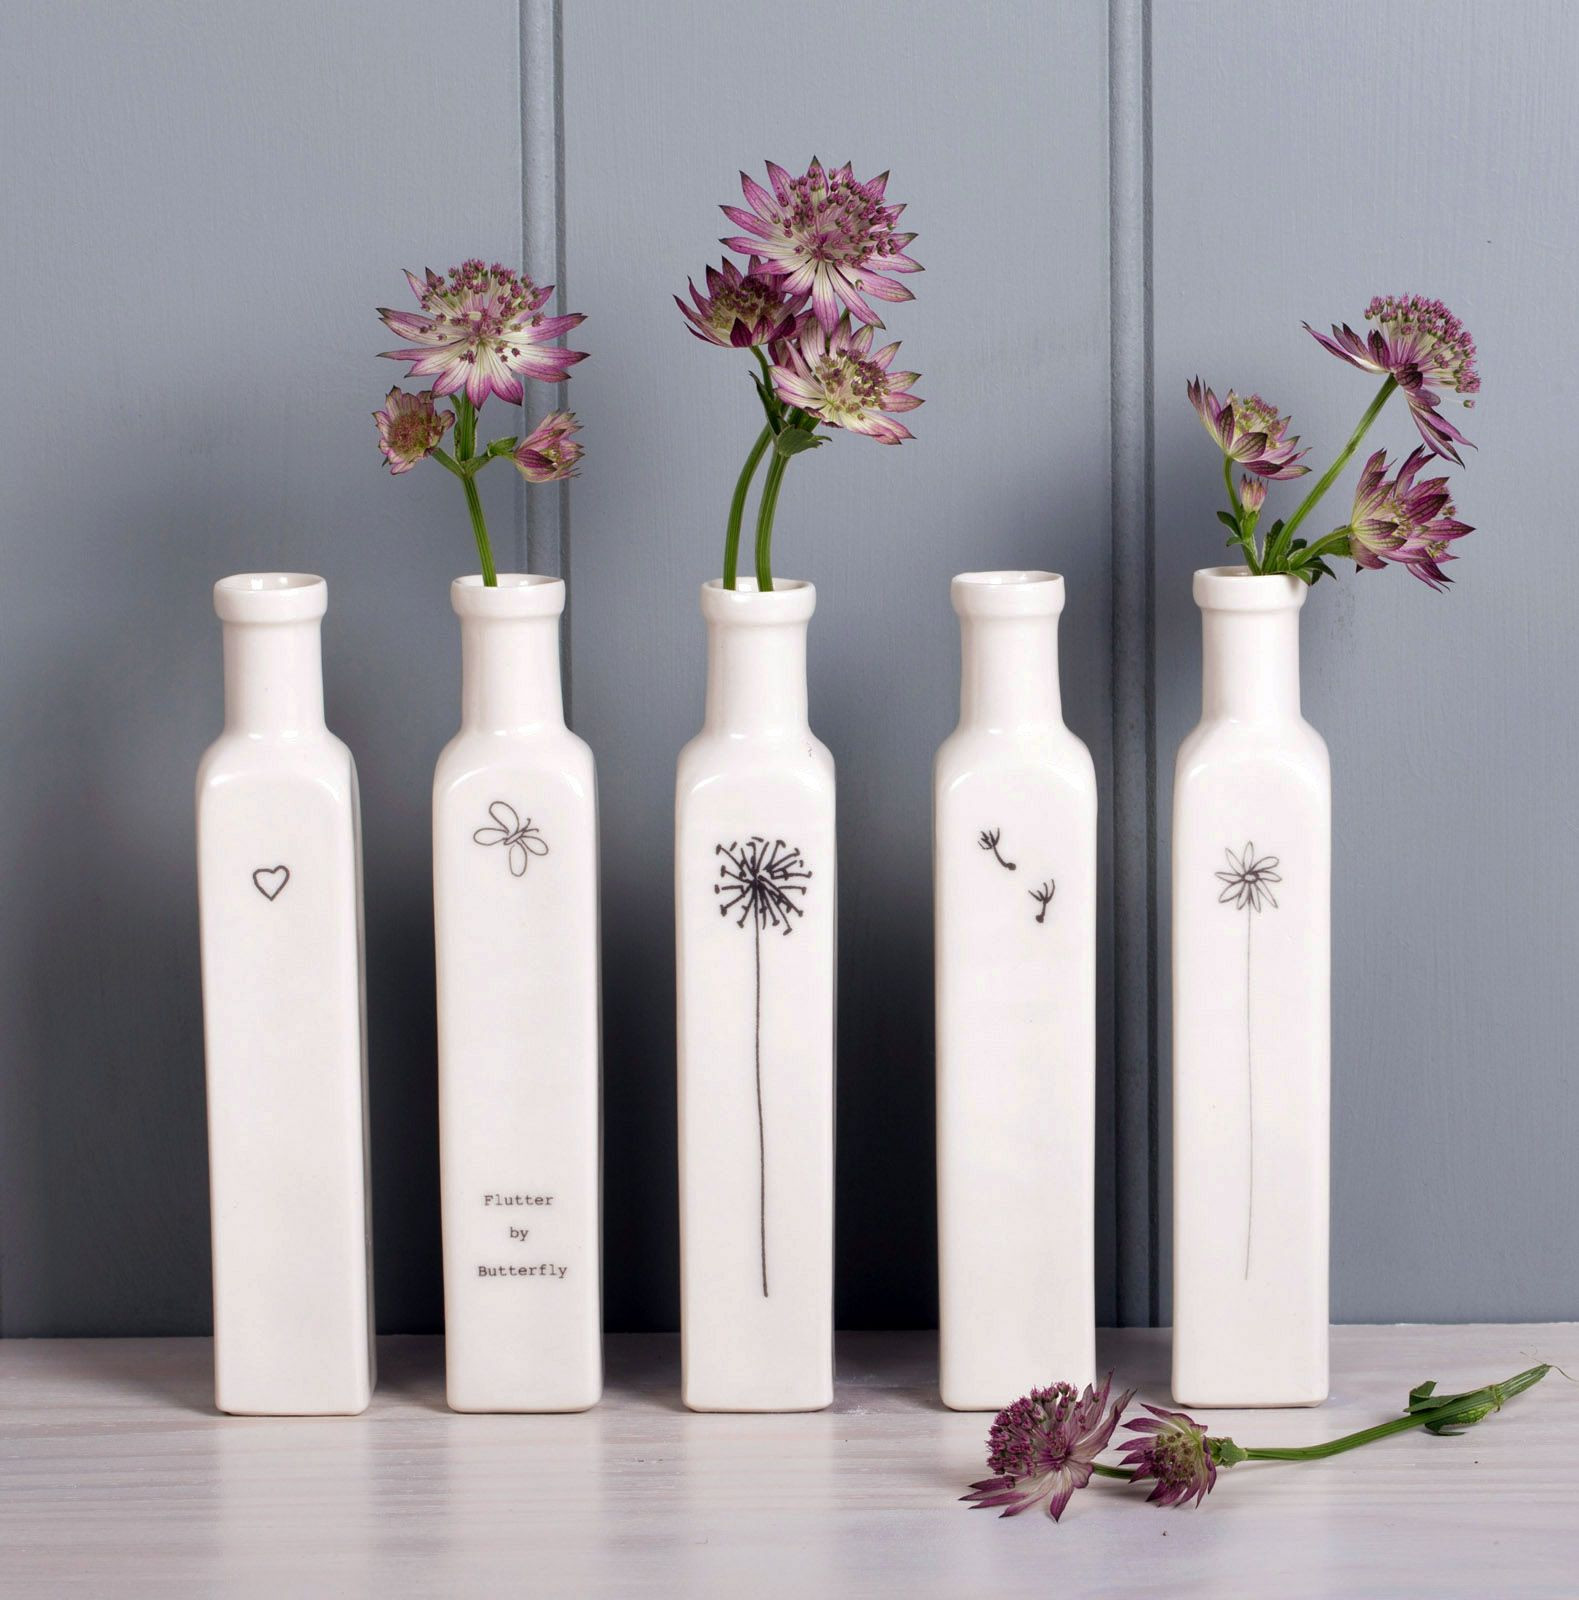 large vase set of boop design a set of tall thin bottle vases available from http with boop design a set of tall thin bottle vases available from http www boopdesign com store c13 tall thin bottle vases html